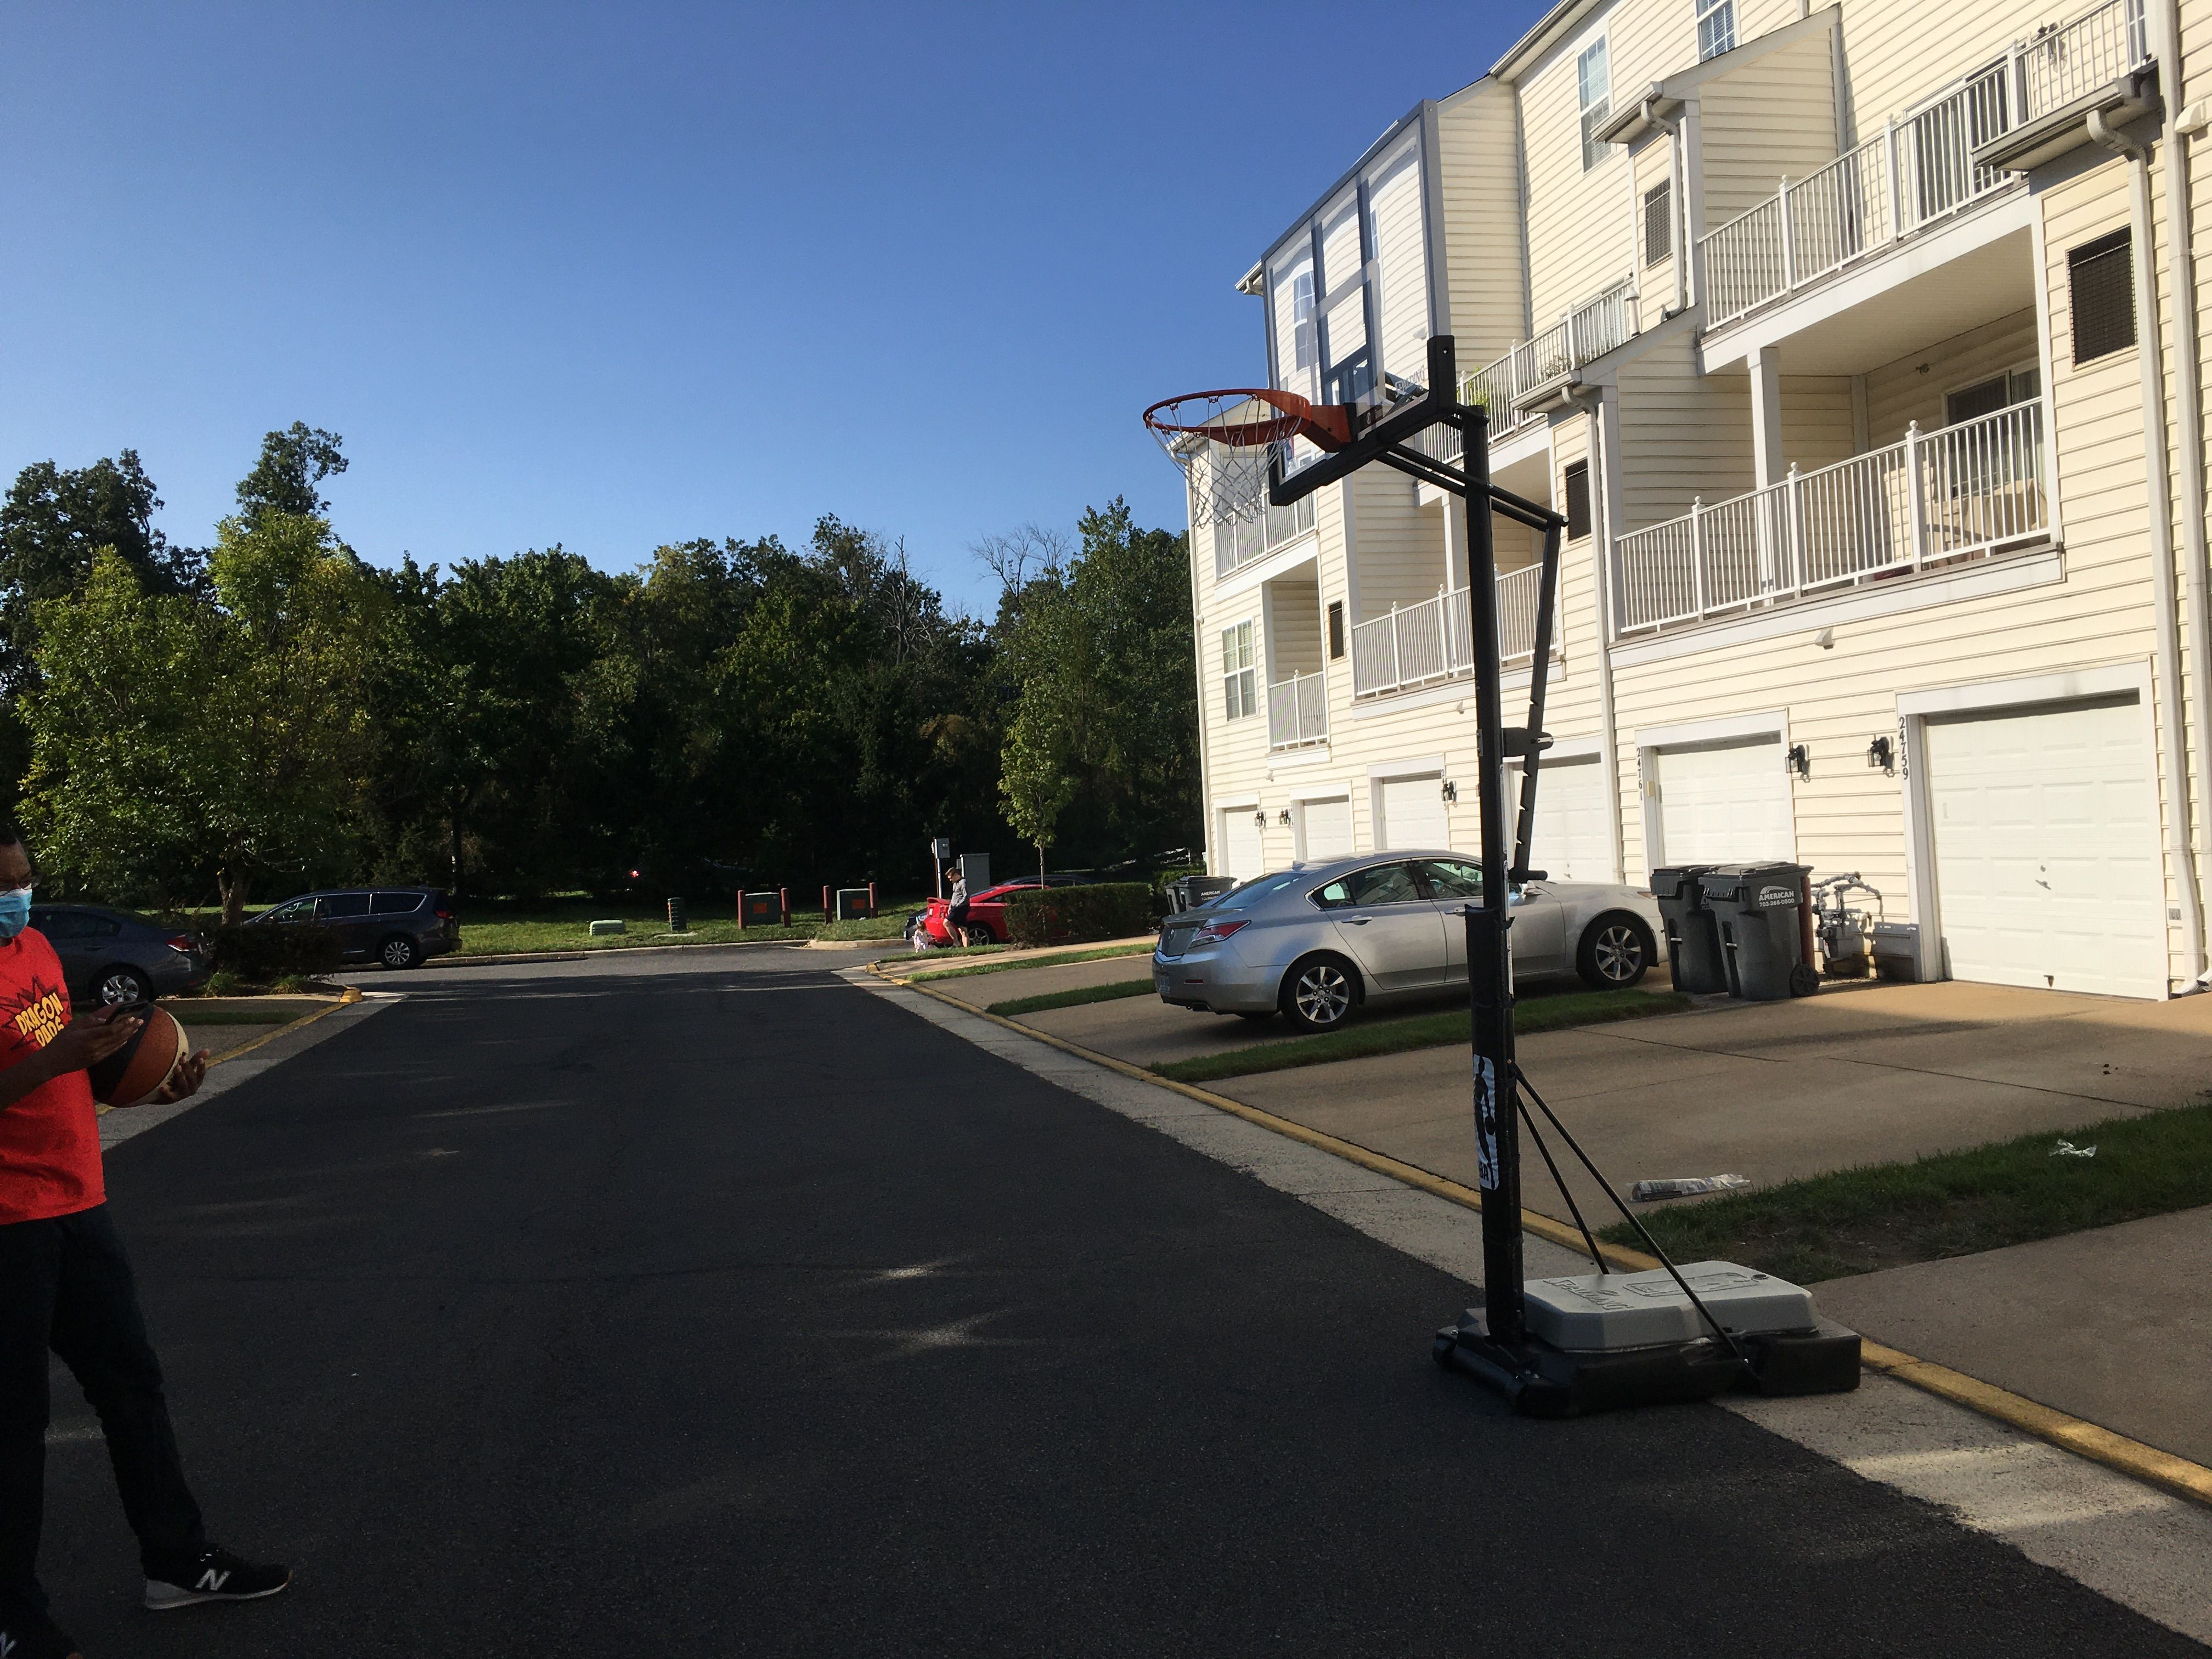 Portable Basketball Hoop Movers In Washington Dc Virginia And Maryland By Furniture Experts Movers Lexington Park Fort Belvoir Leesburg Virginia